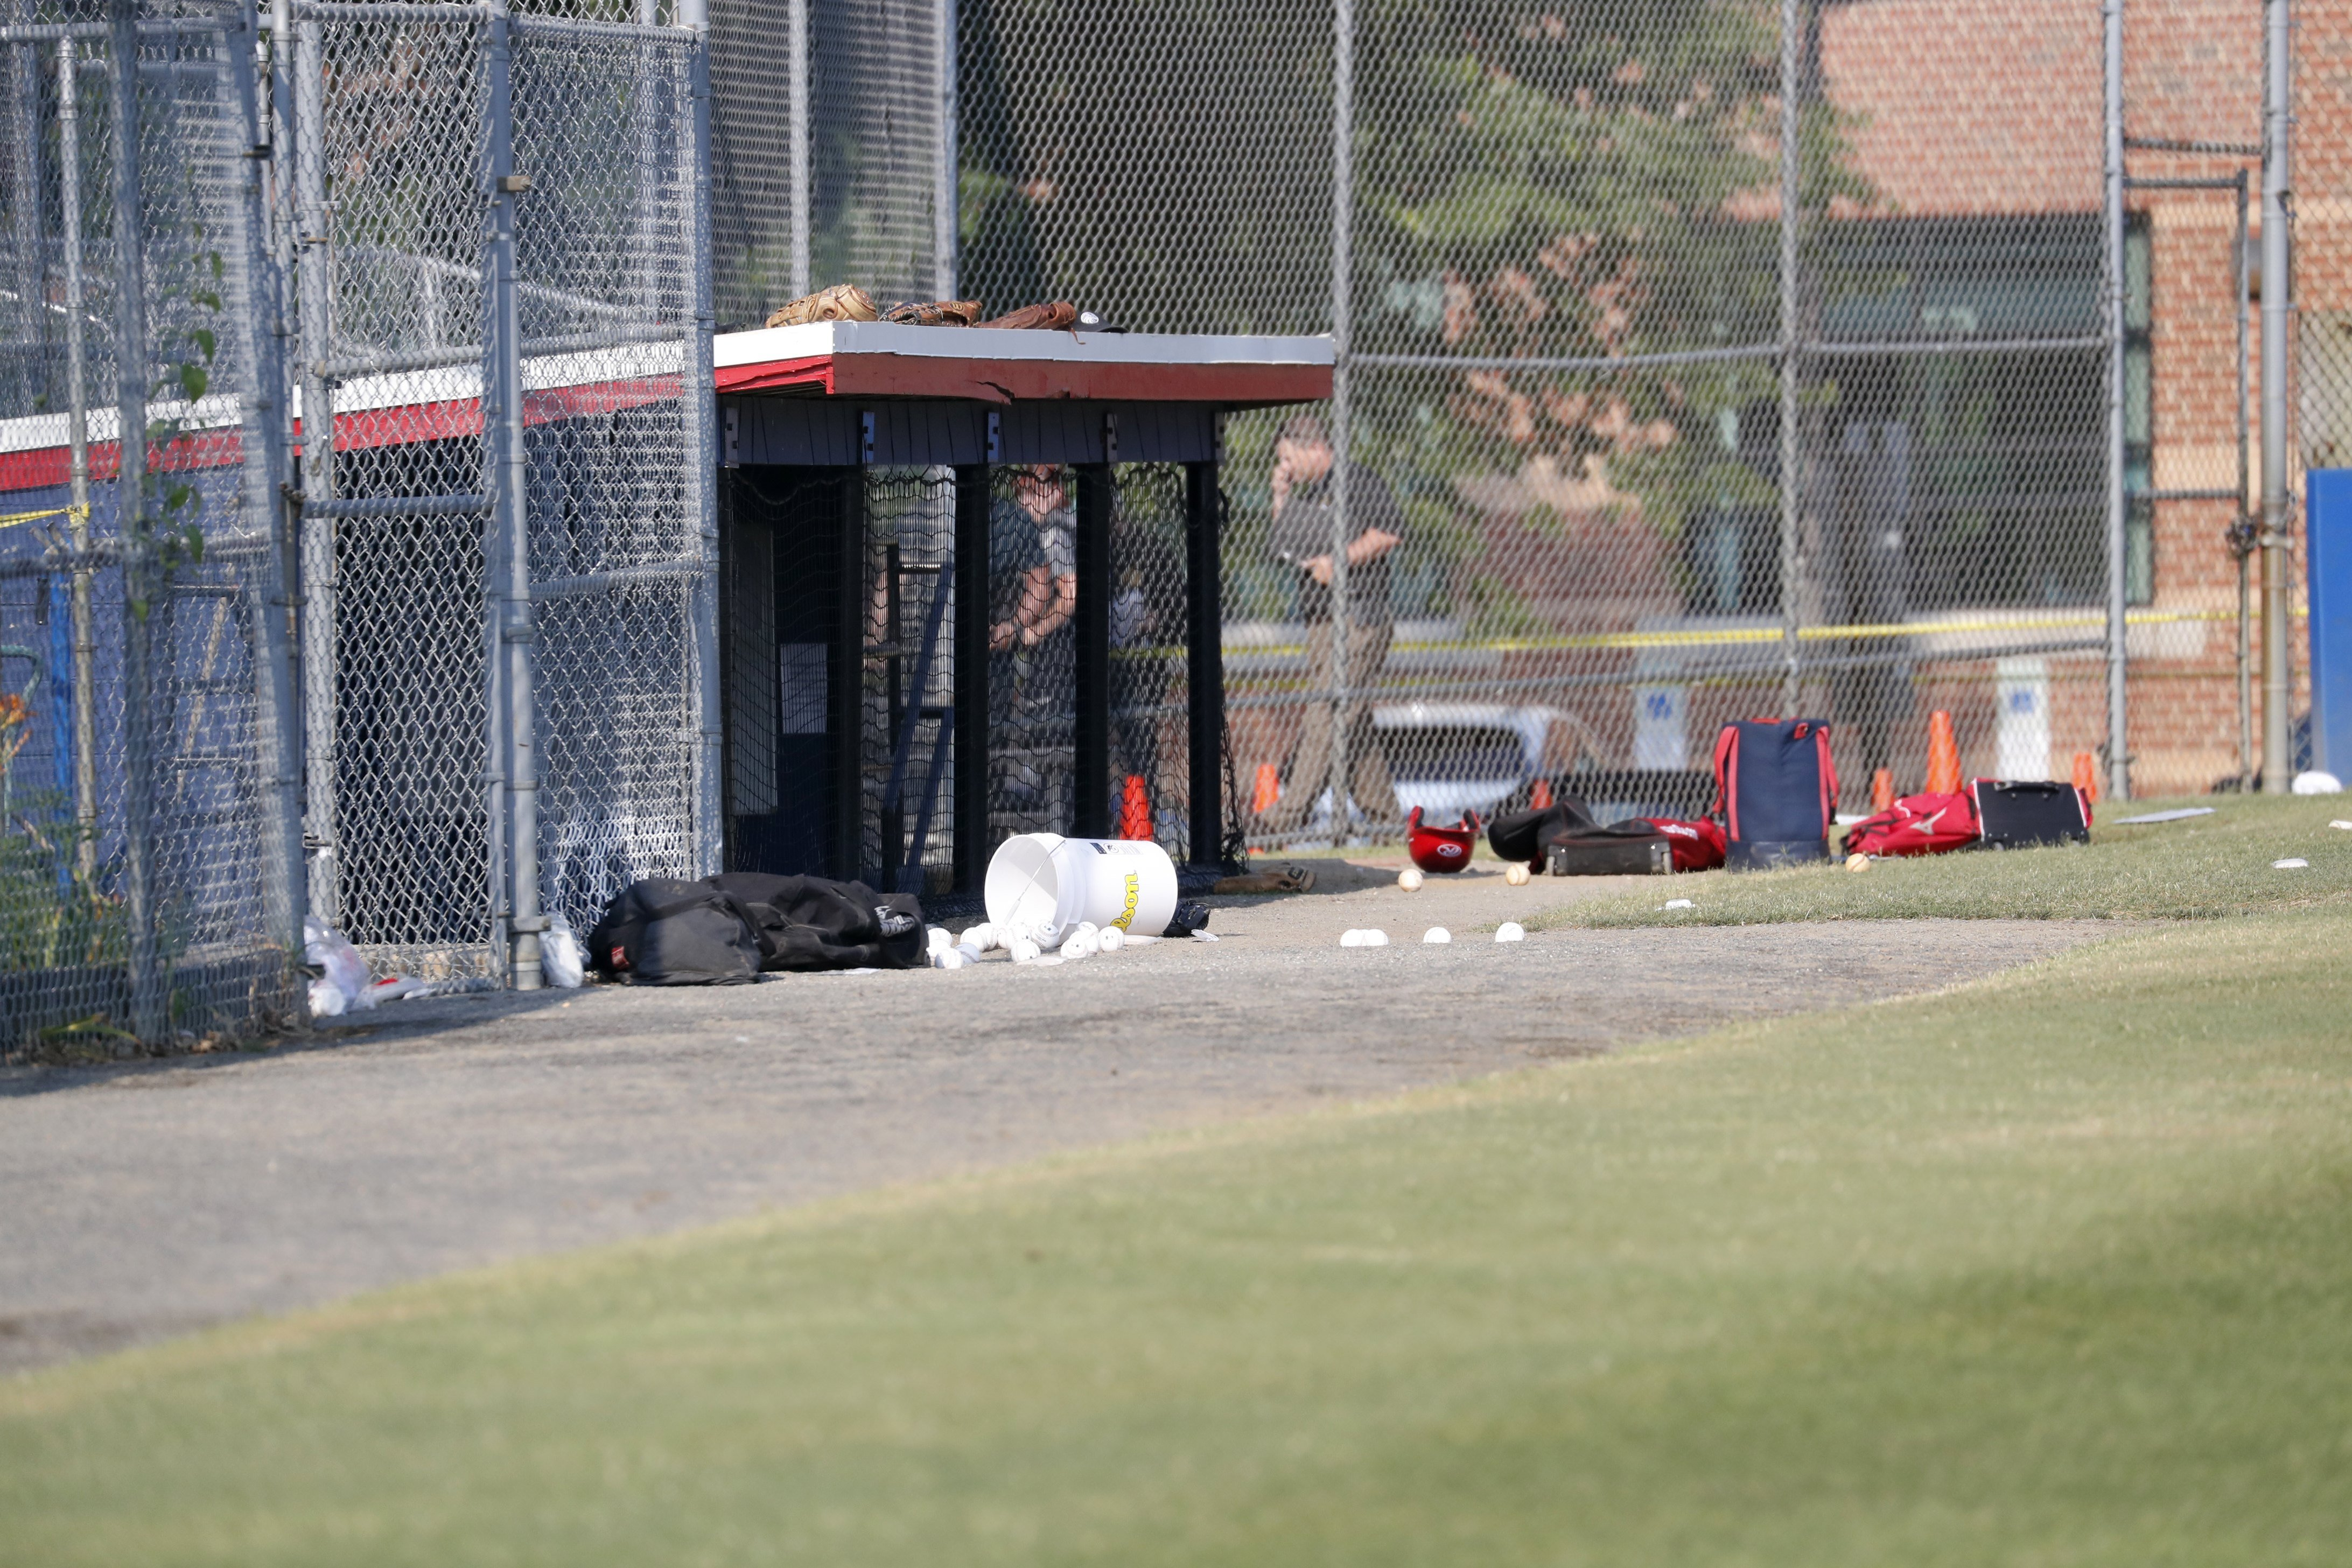 Baseball equipment is seen scattered on the field where a shooting took place at the practice of the Republican congressional baseball team at Eugene Simpson Stadium Park in Alexandria, Virginia on June 14, 2017.